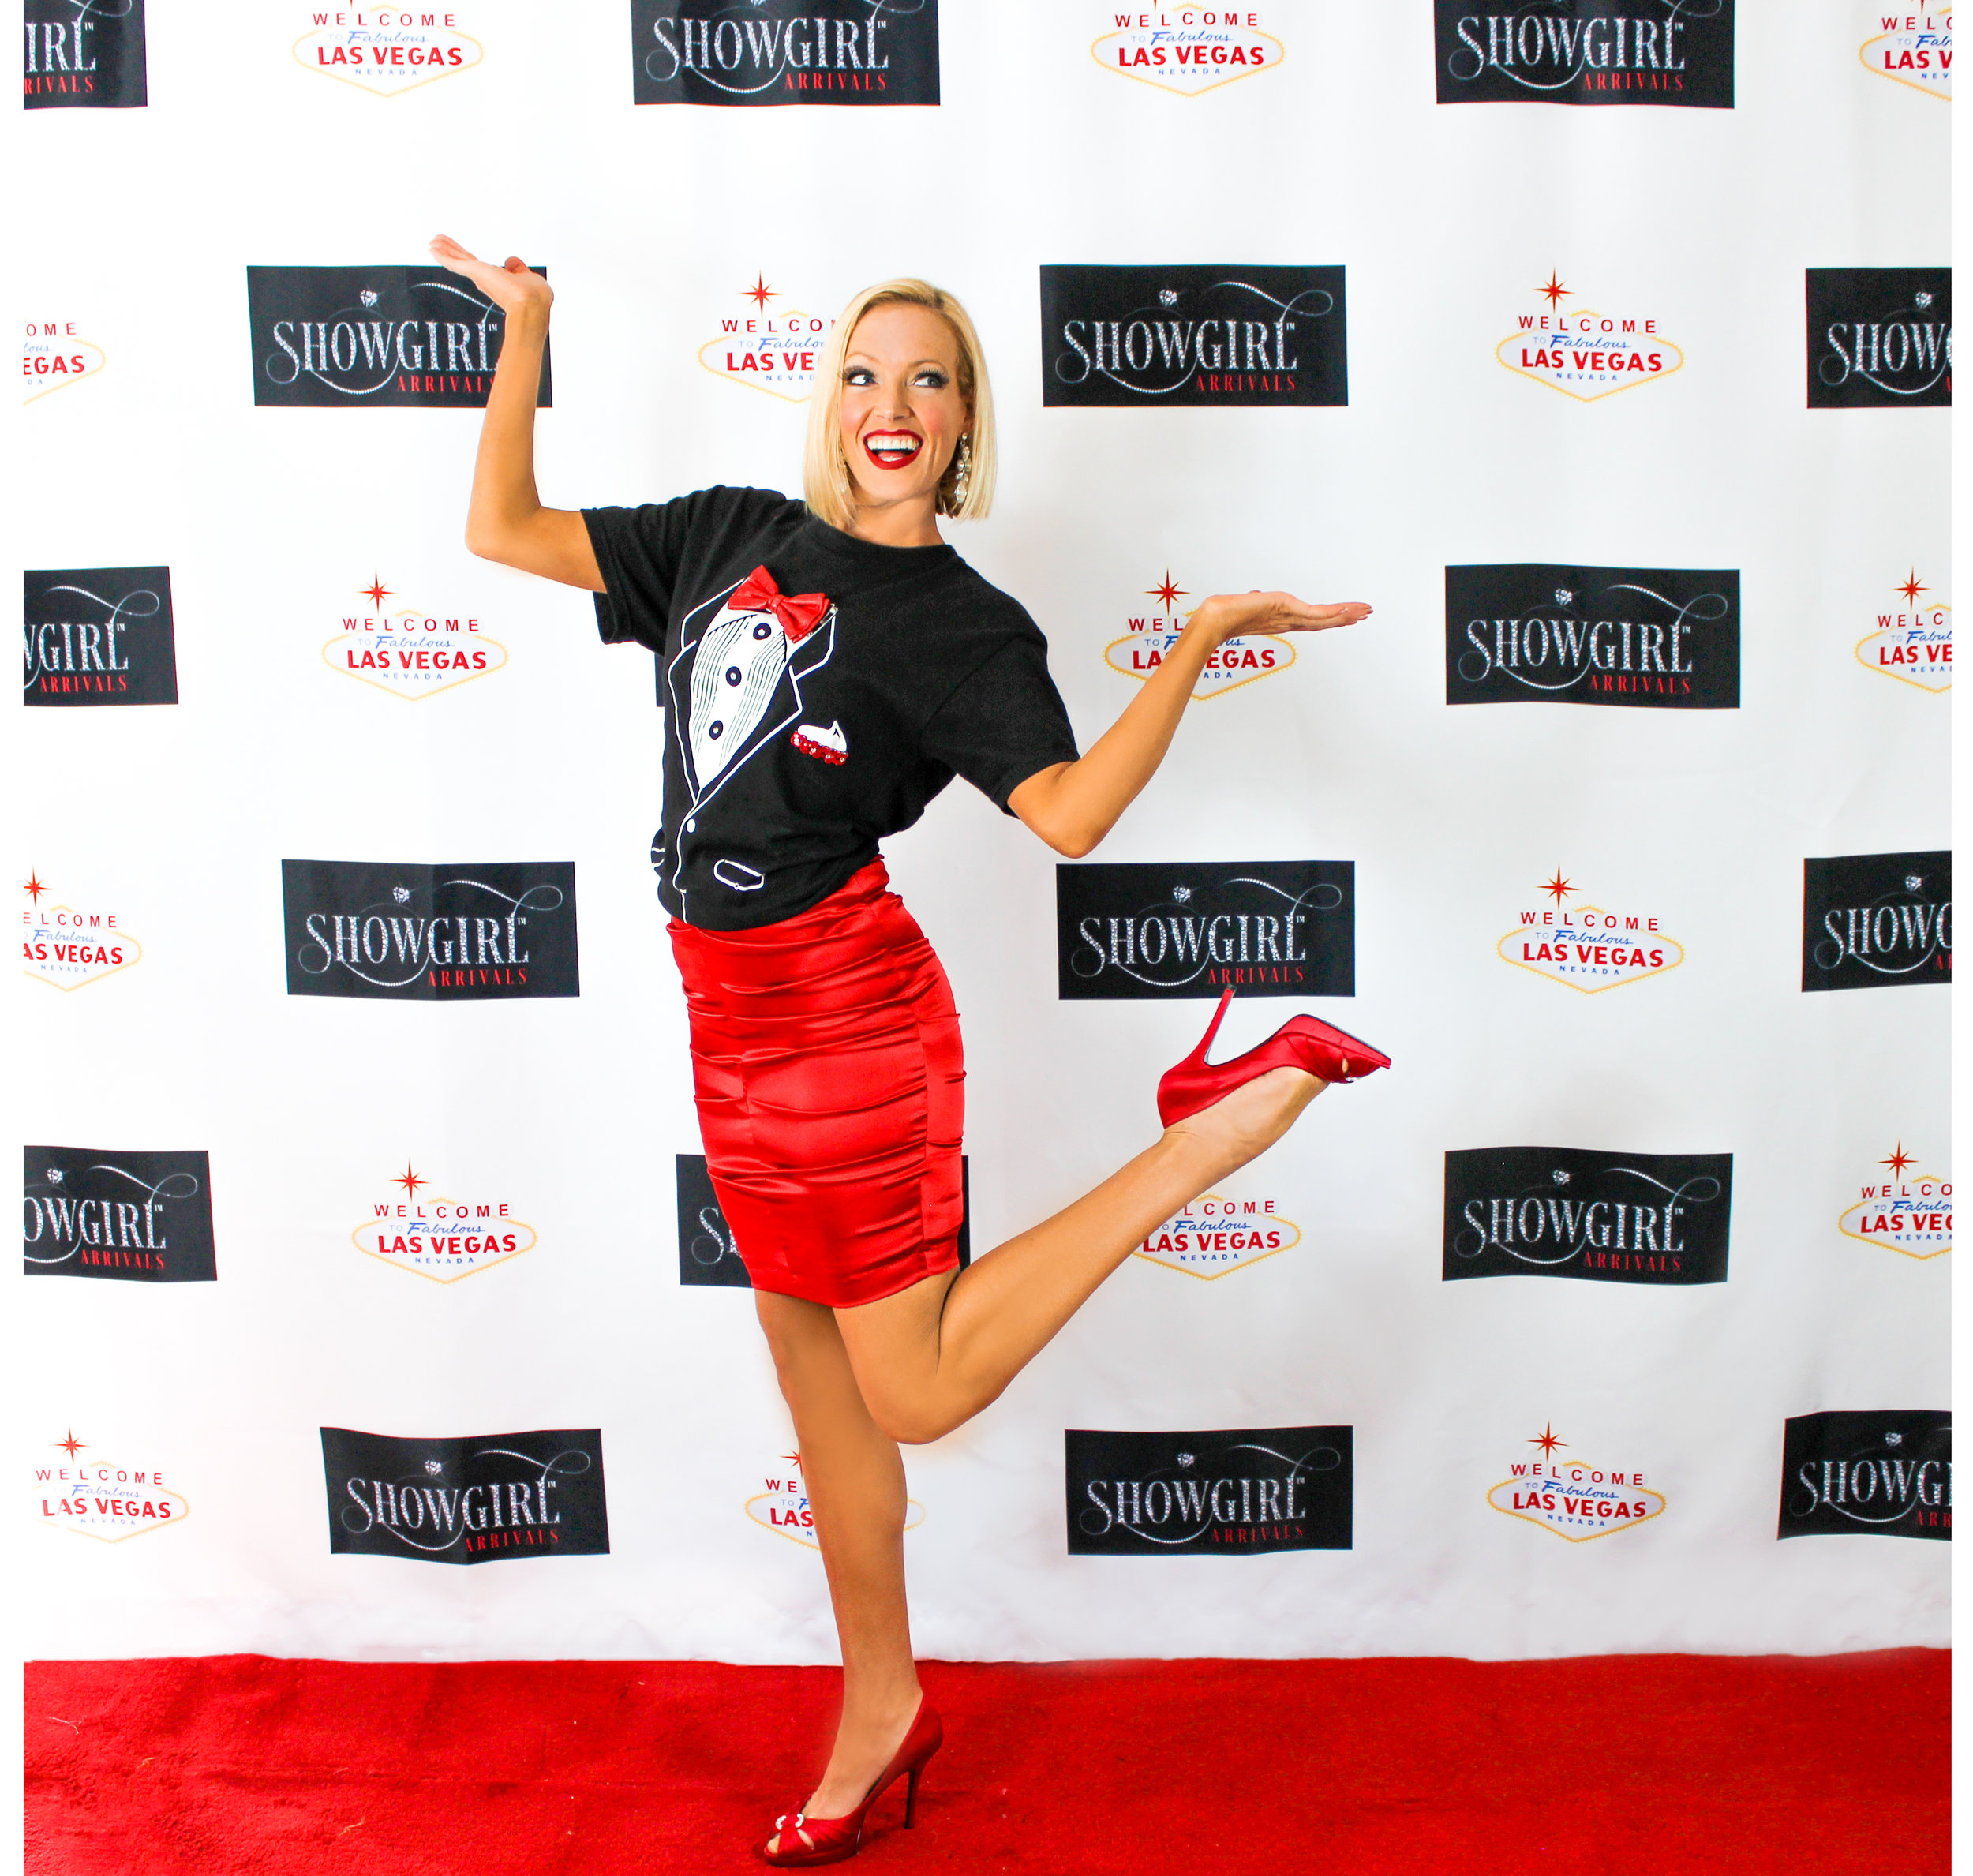 Skirt and Tie - Our Formal and Fun T-shirt and Satin Red Skirt